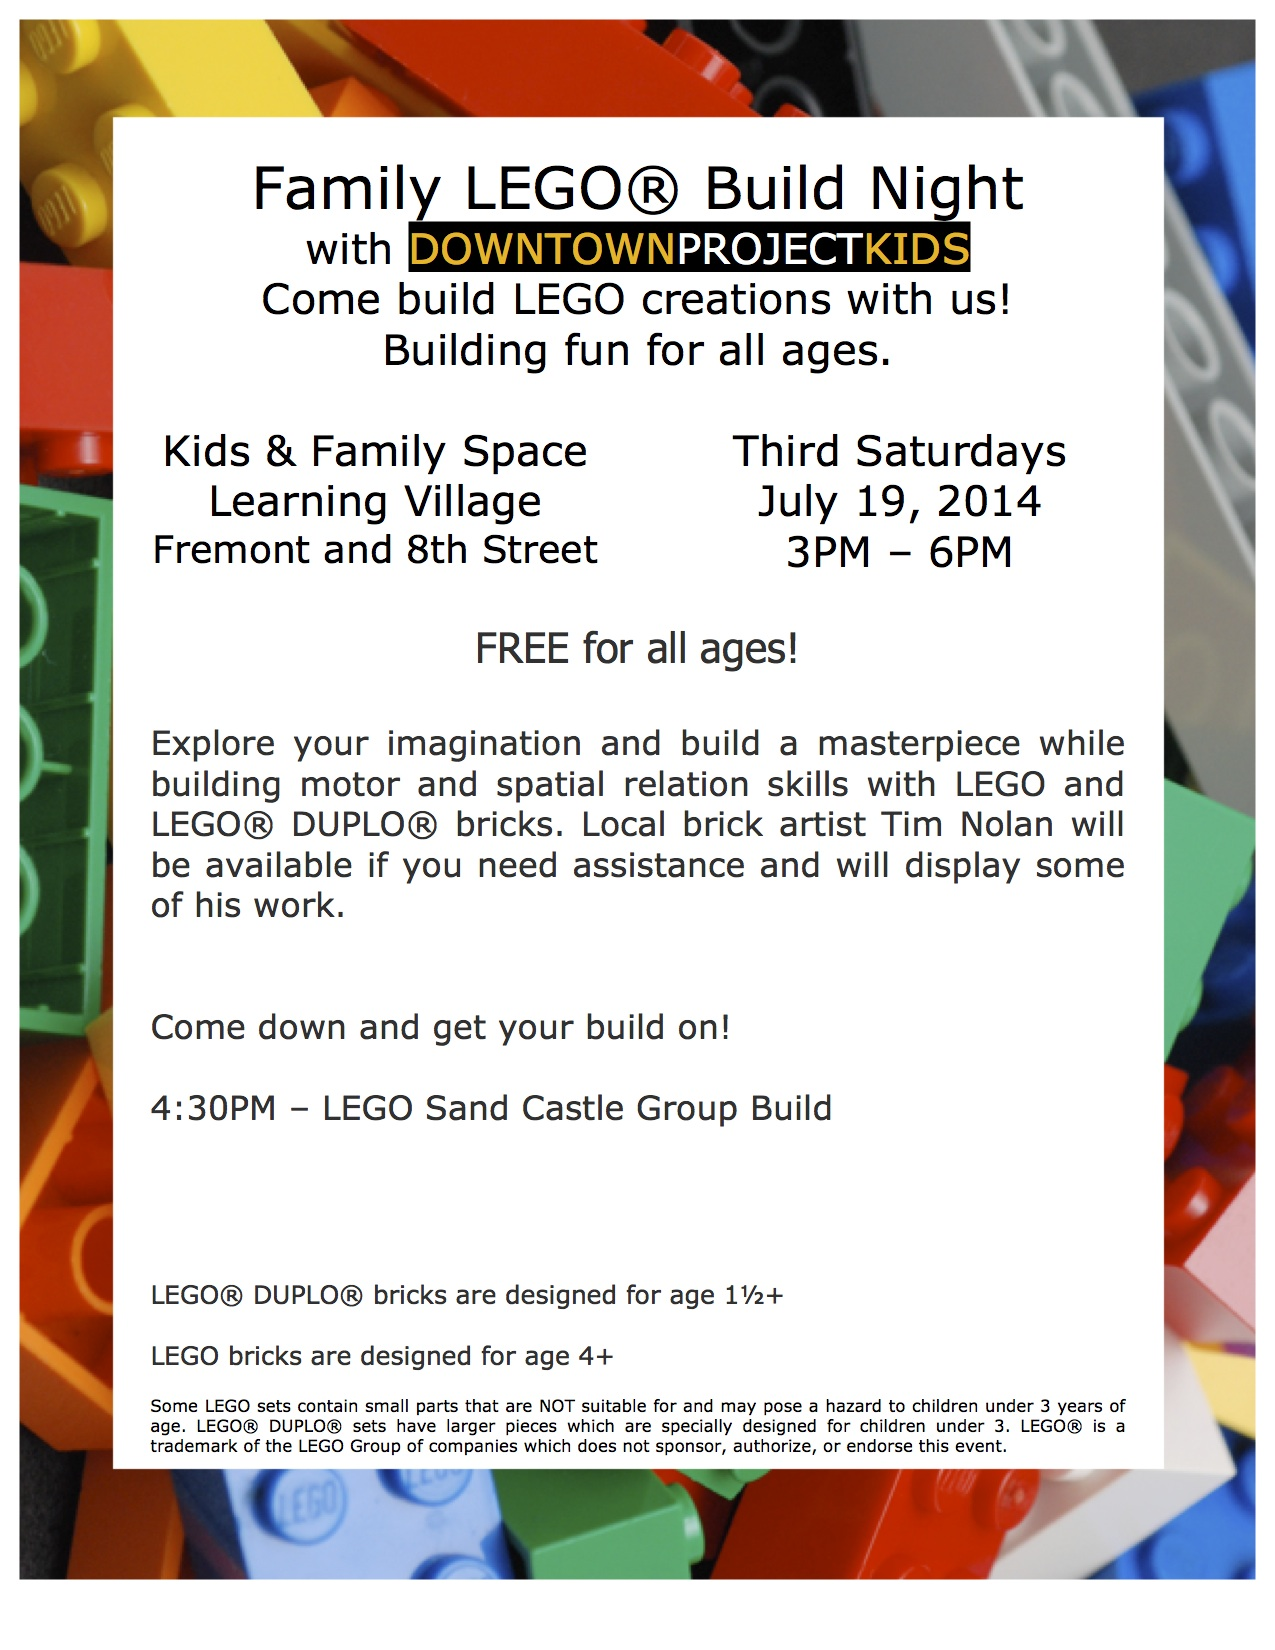 Family LEGO速 Build Night 7/19/14